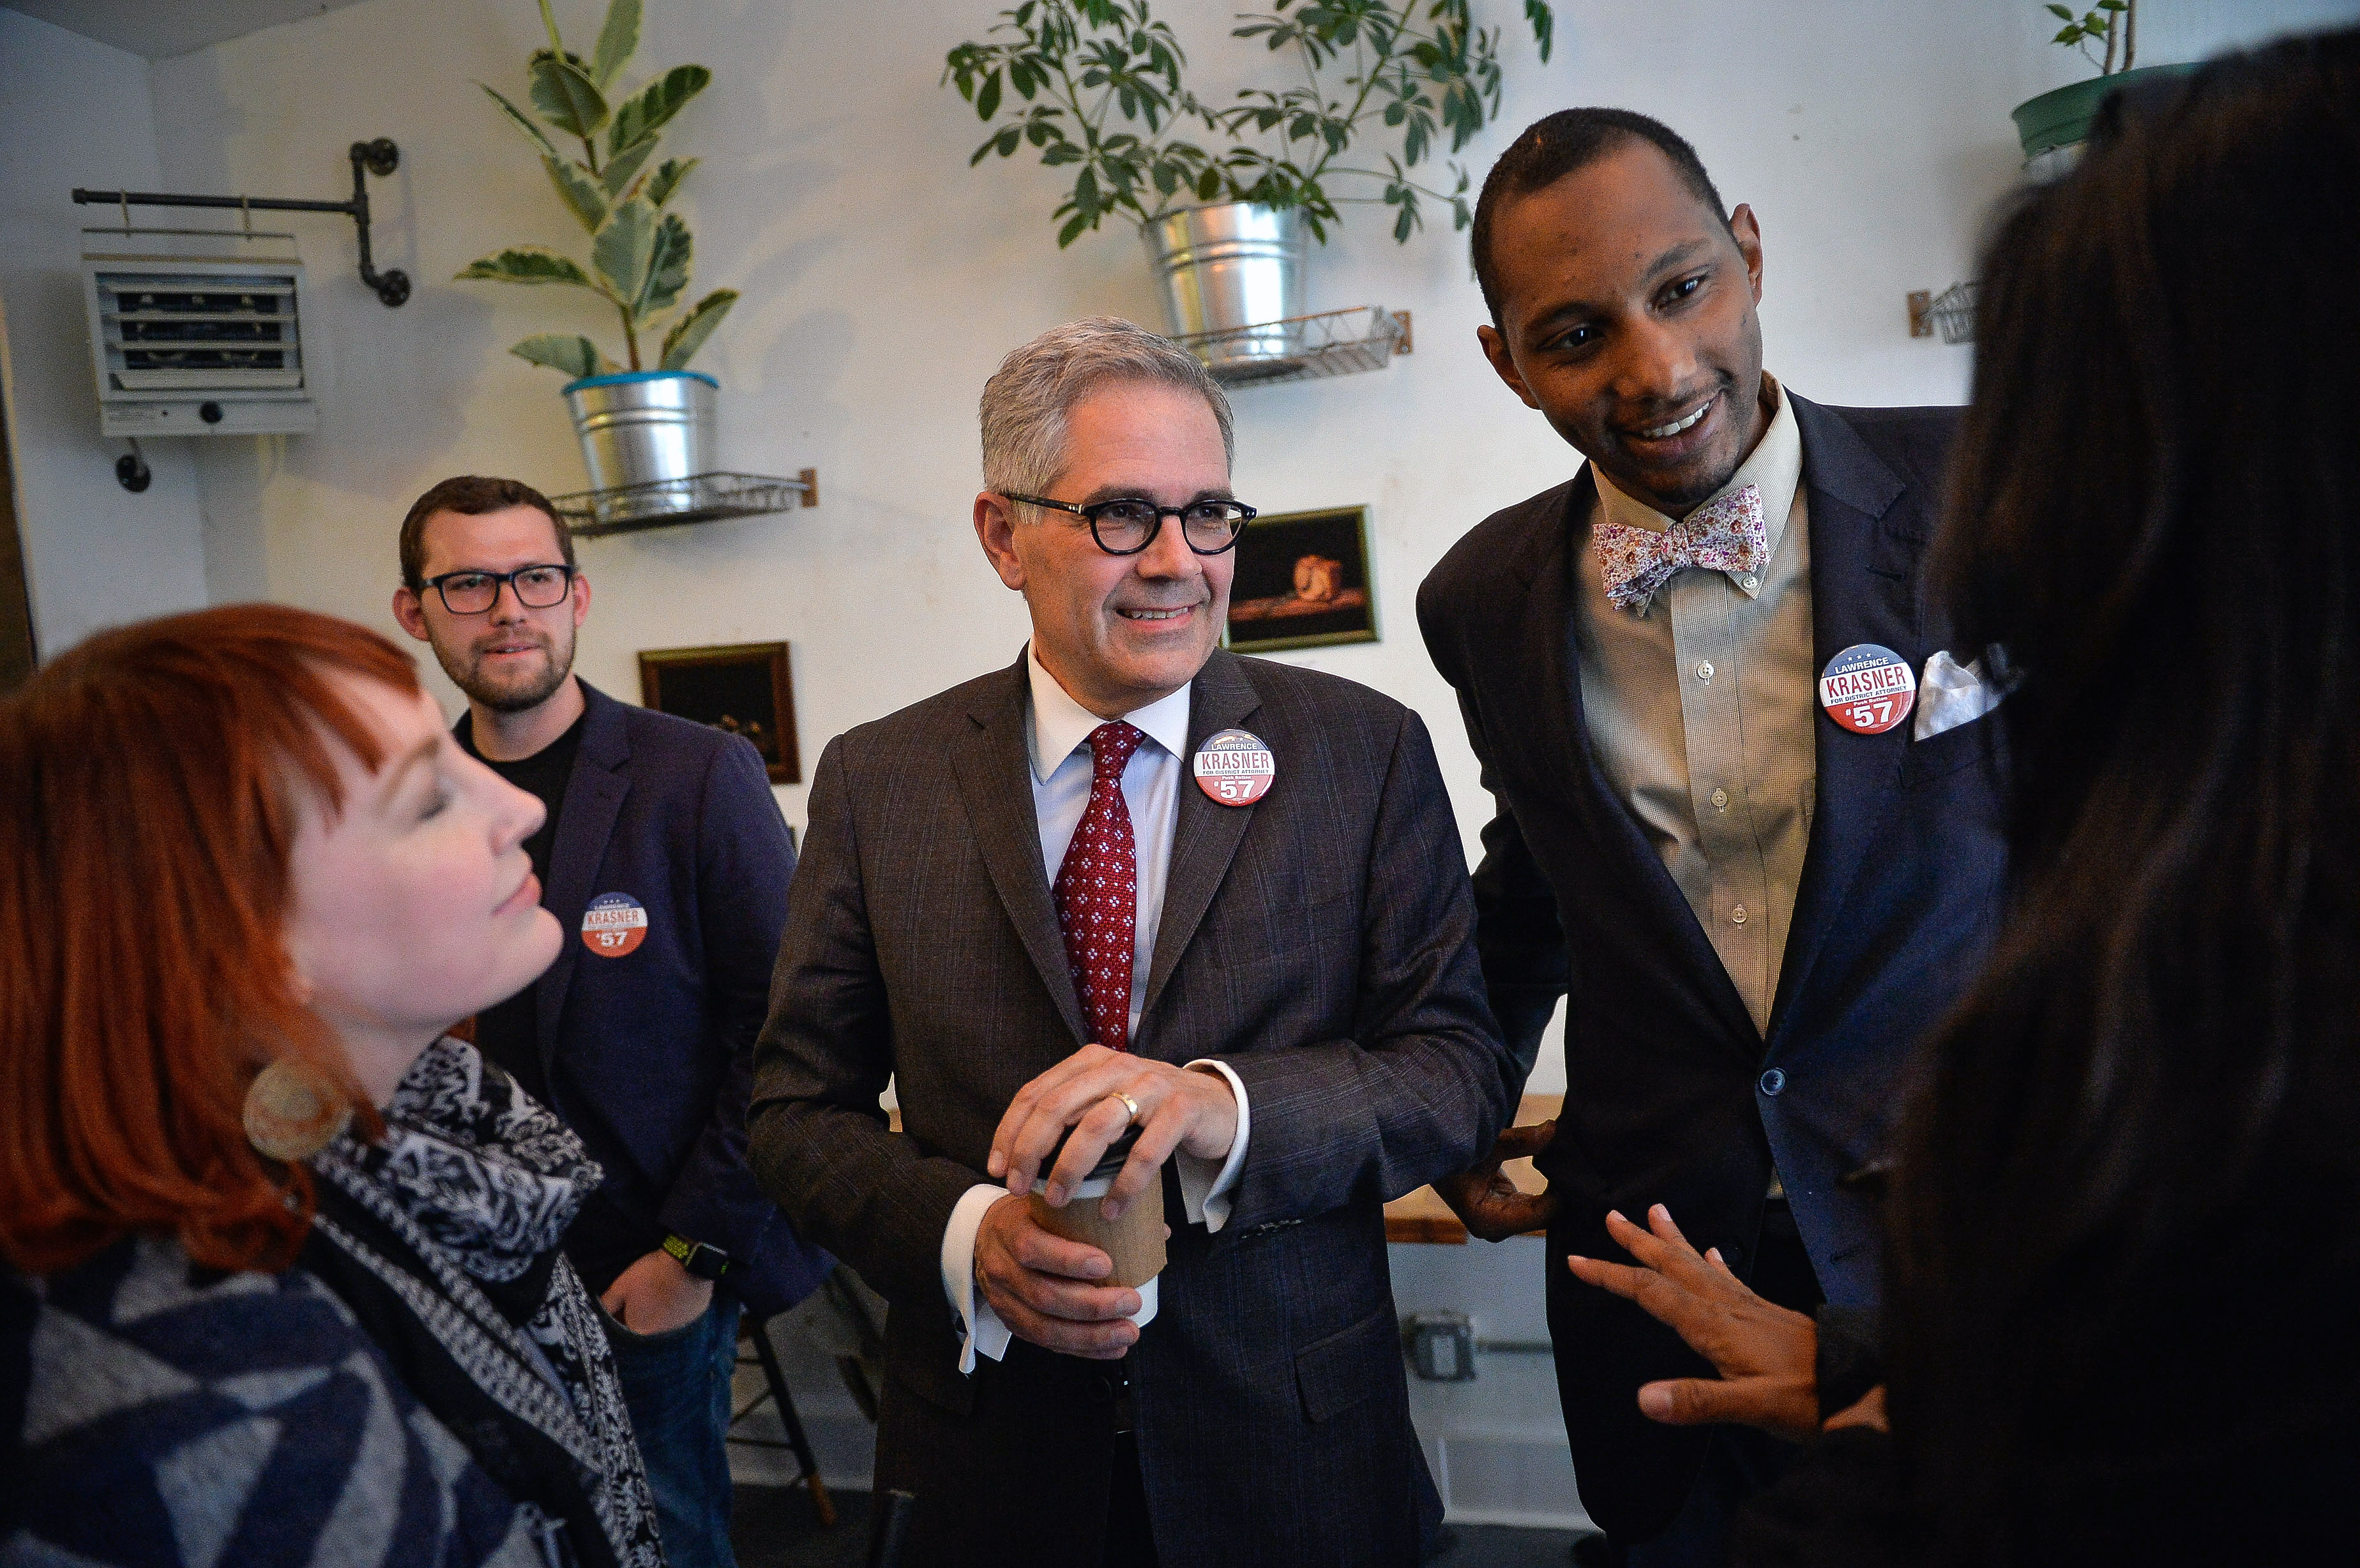 Philadelphia District Attorney candidate Lawrence Krasner speaks with volunteers and supporters during a volunteer thank you event in Philadelphia, PA, Thursday, May 11, 2017. Charles Mostoller for the Intercept